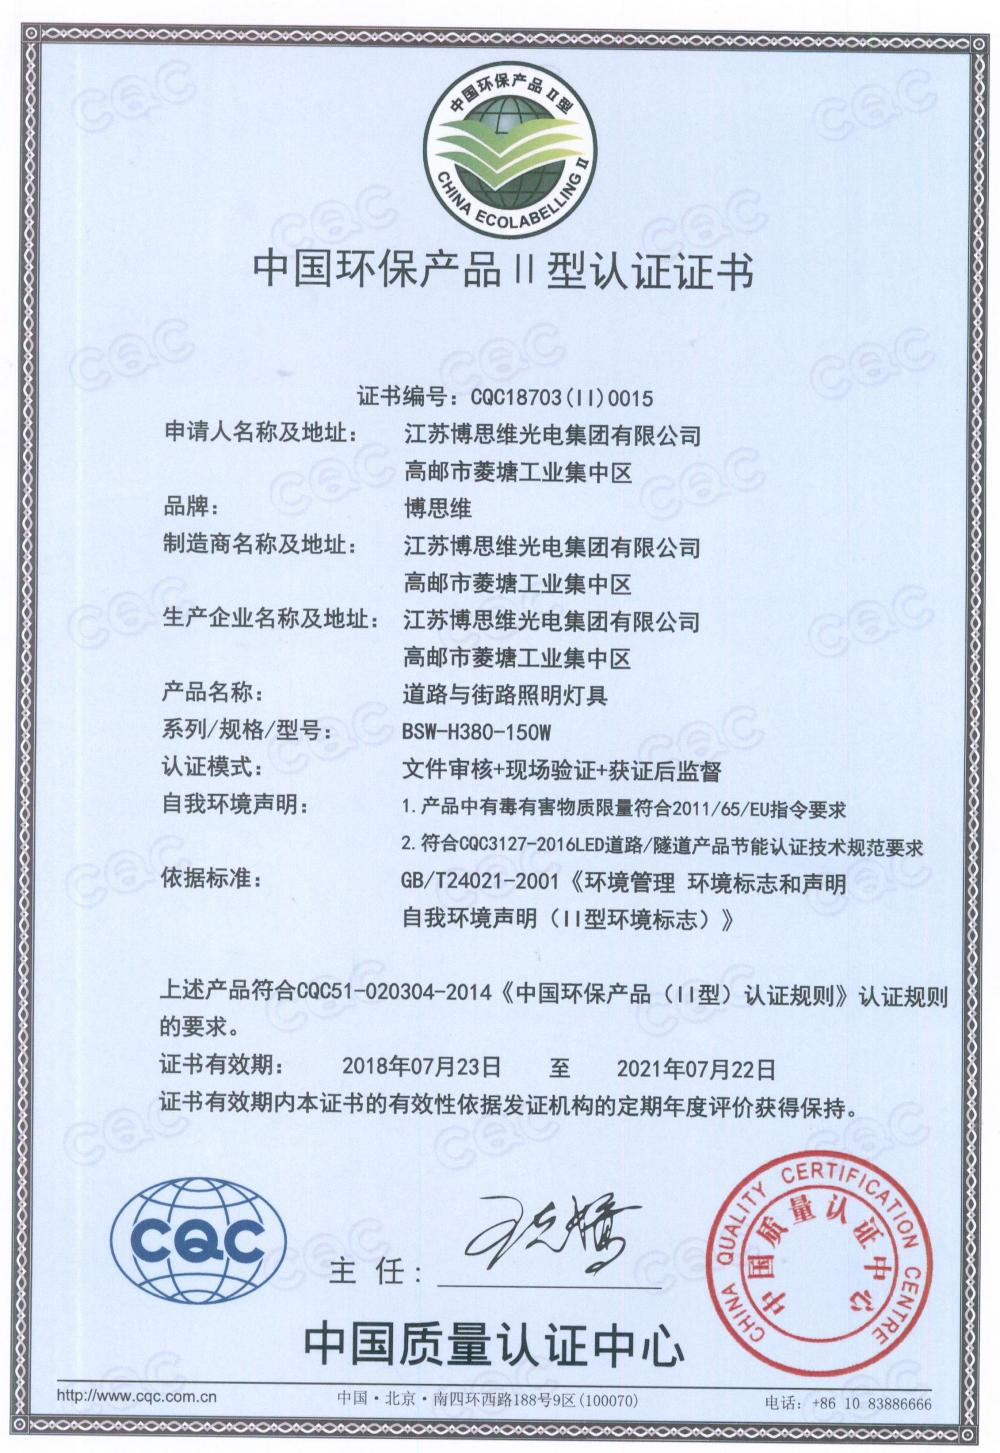 Environmental protection type Ⅱ certification